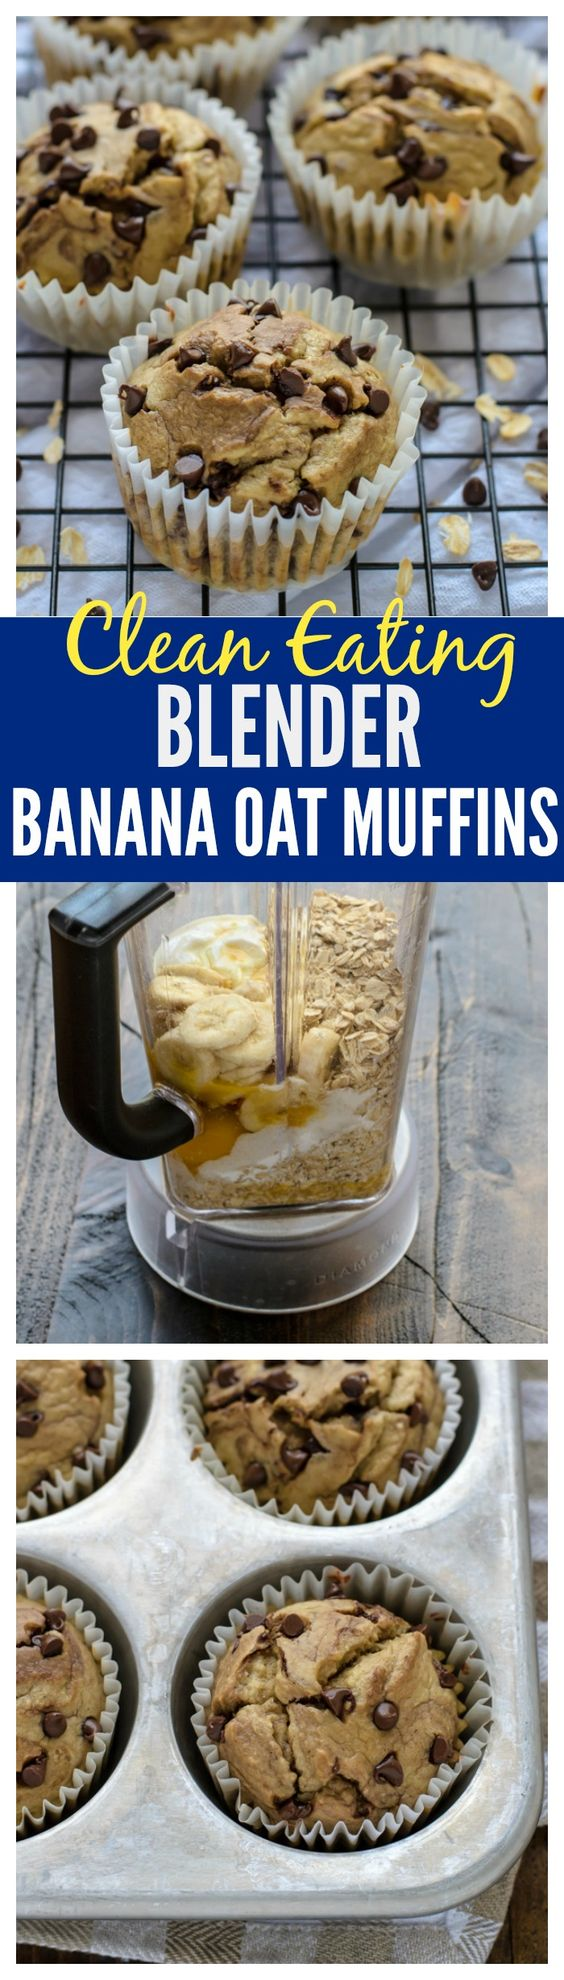 Clean Eating Greek Yogurt Banana Oatmeal Muffins. NO butter, sugar, or oil, and they taste amazing. This is the best healthy banana muffin recipe. Kids love them and they are gluten free!: